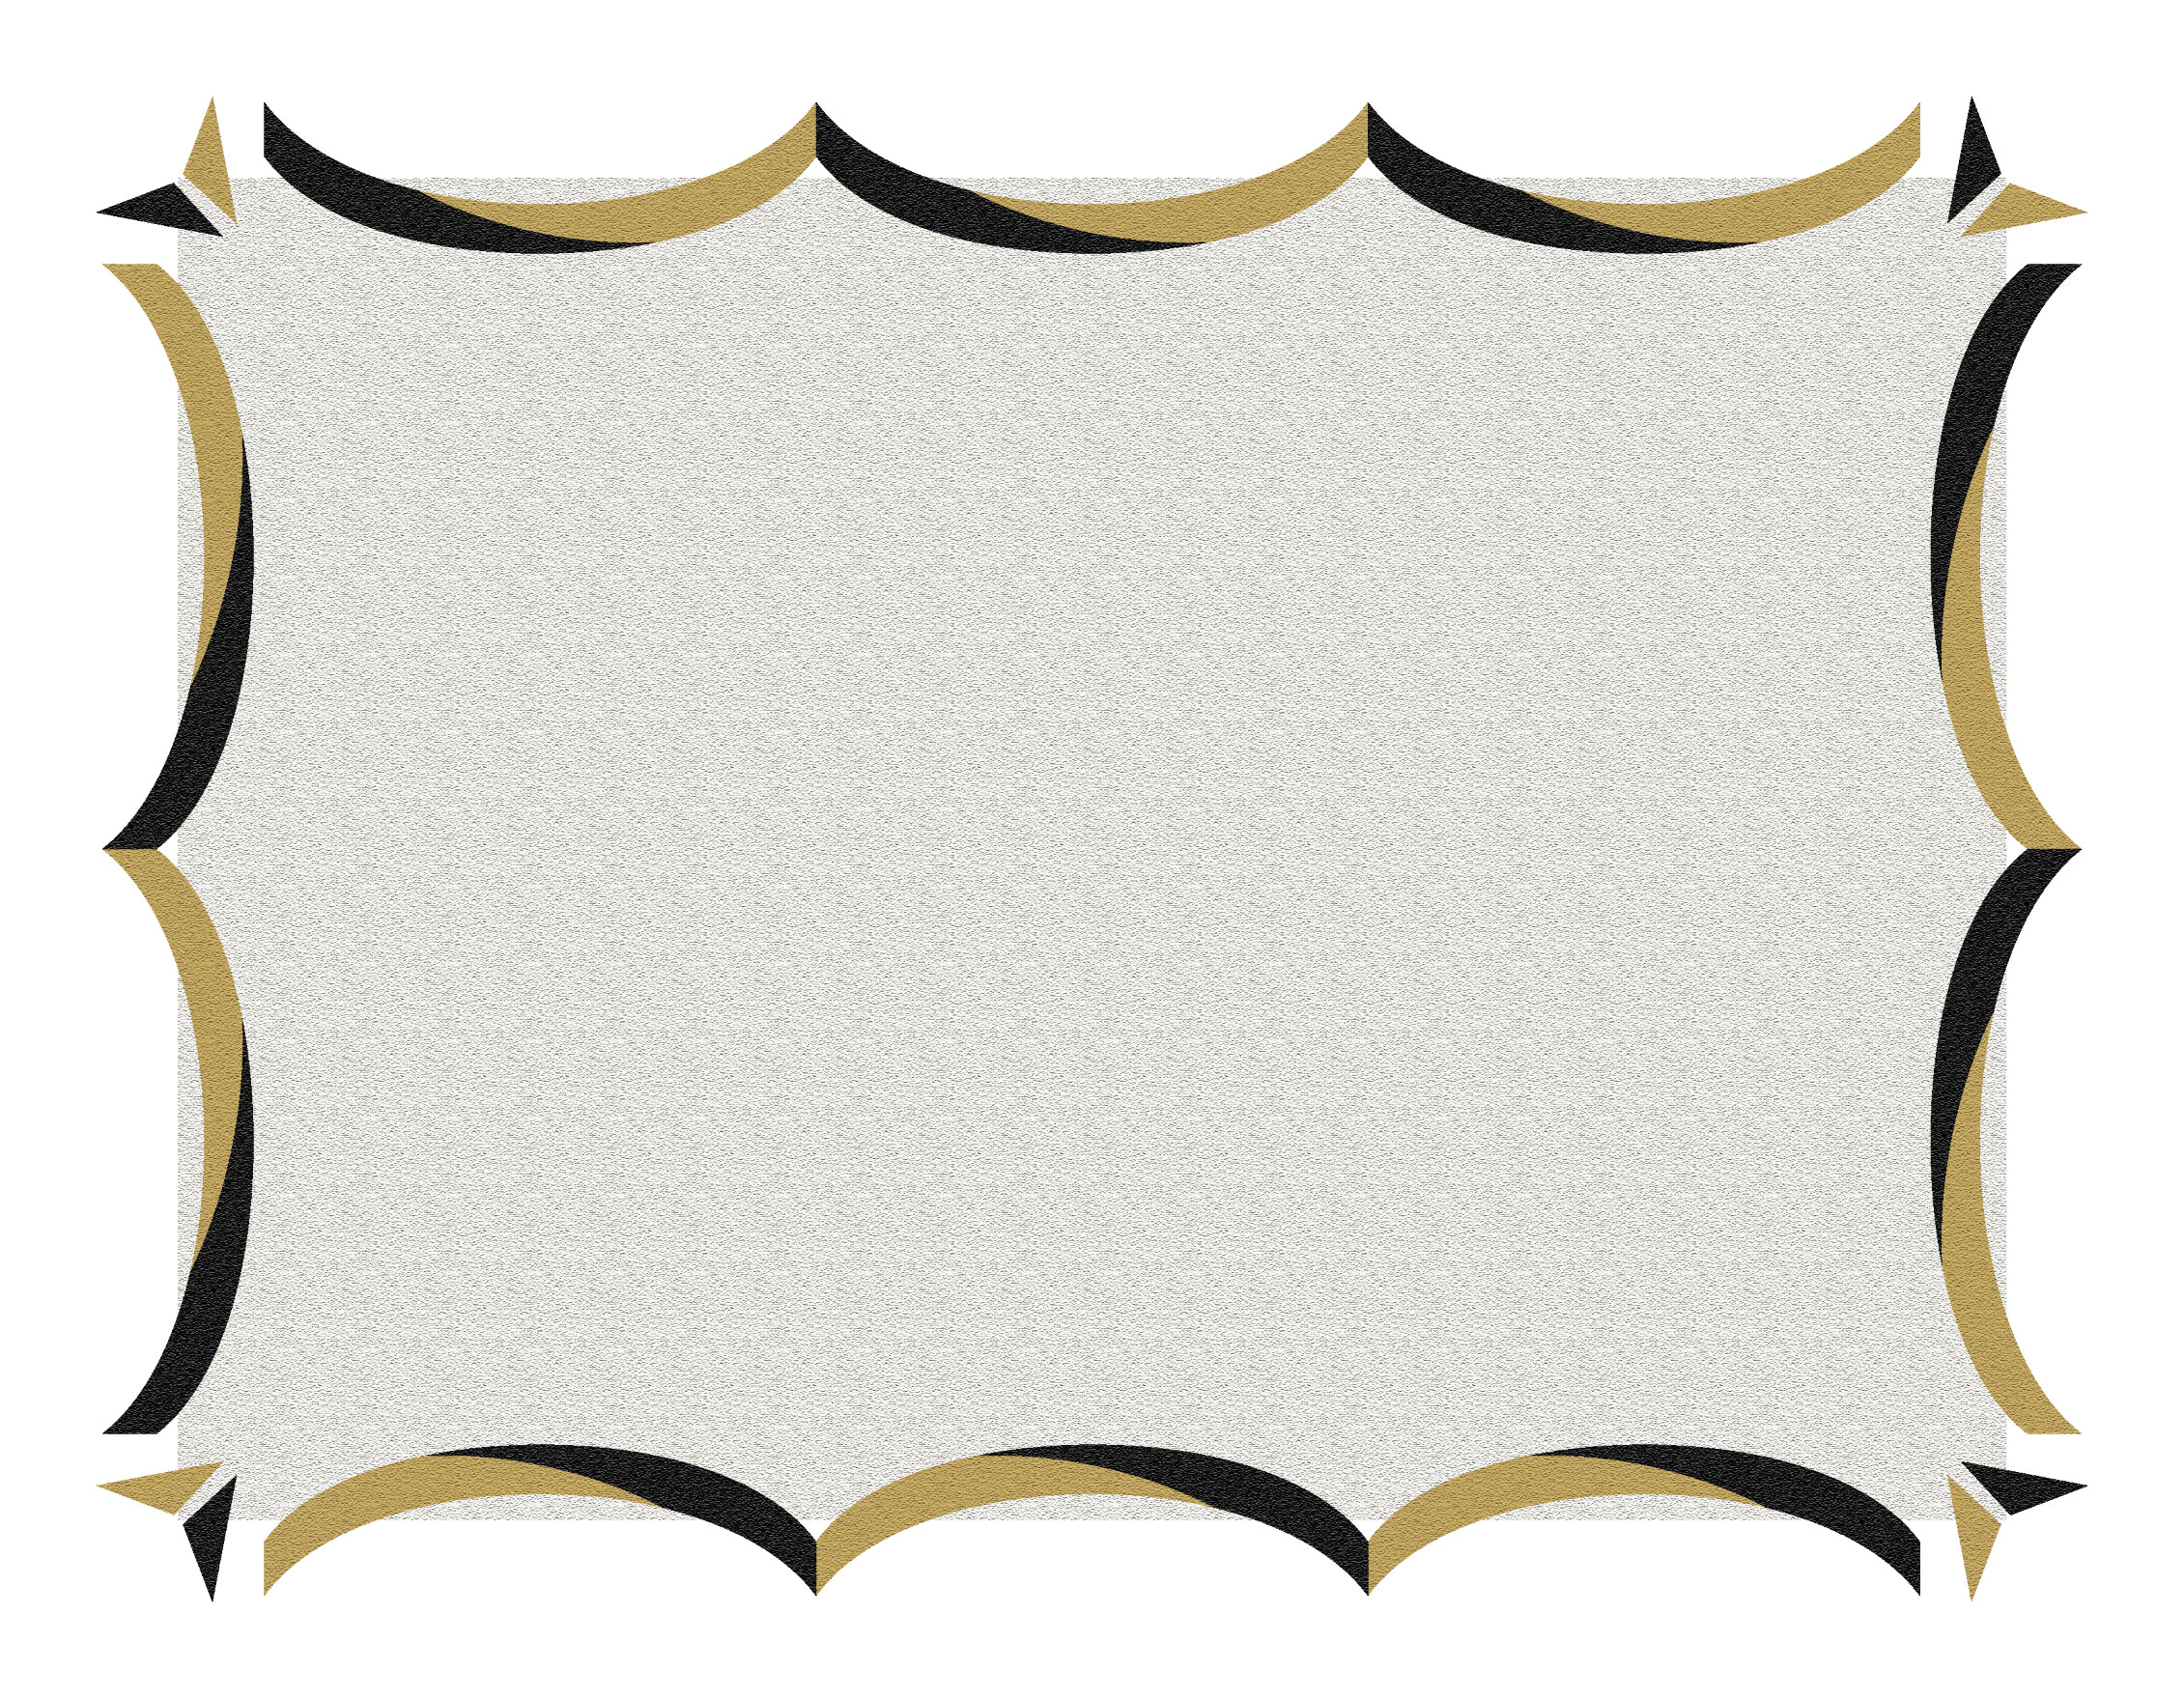 Certificate border clipart free download best certificate border 2261x1759 certificate gold border design clipart template bill of lading yelopaper Choice Image